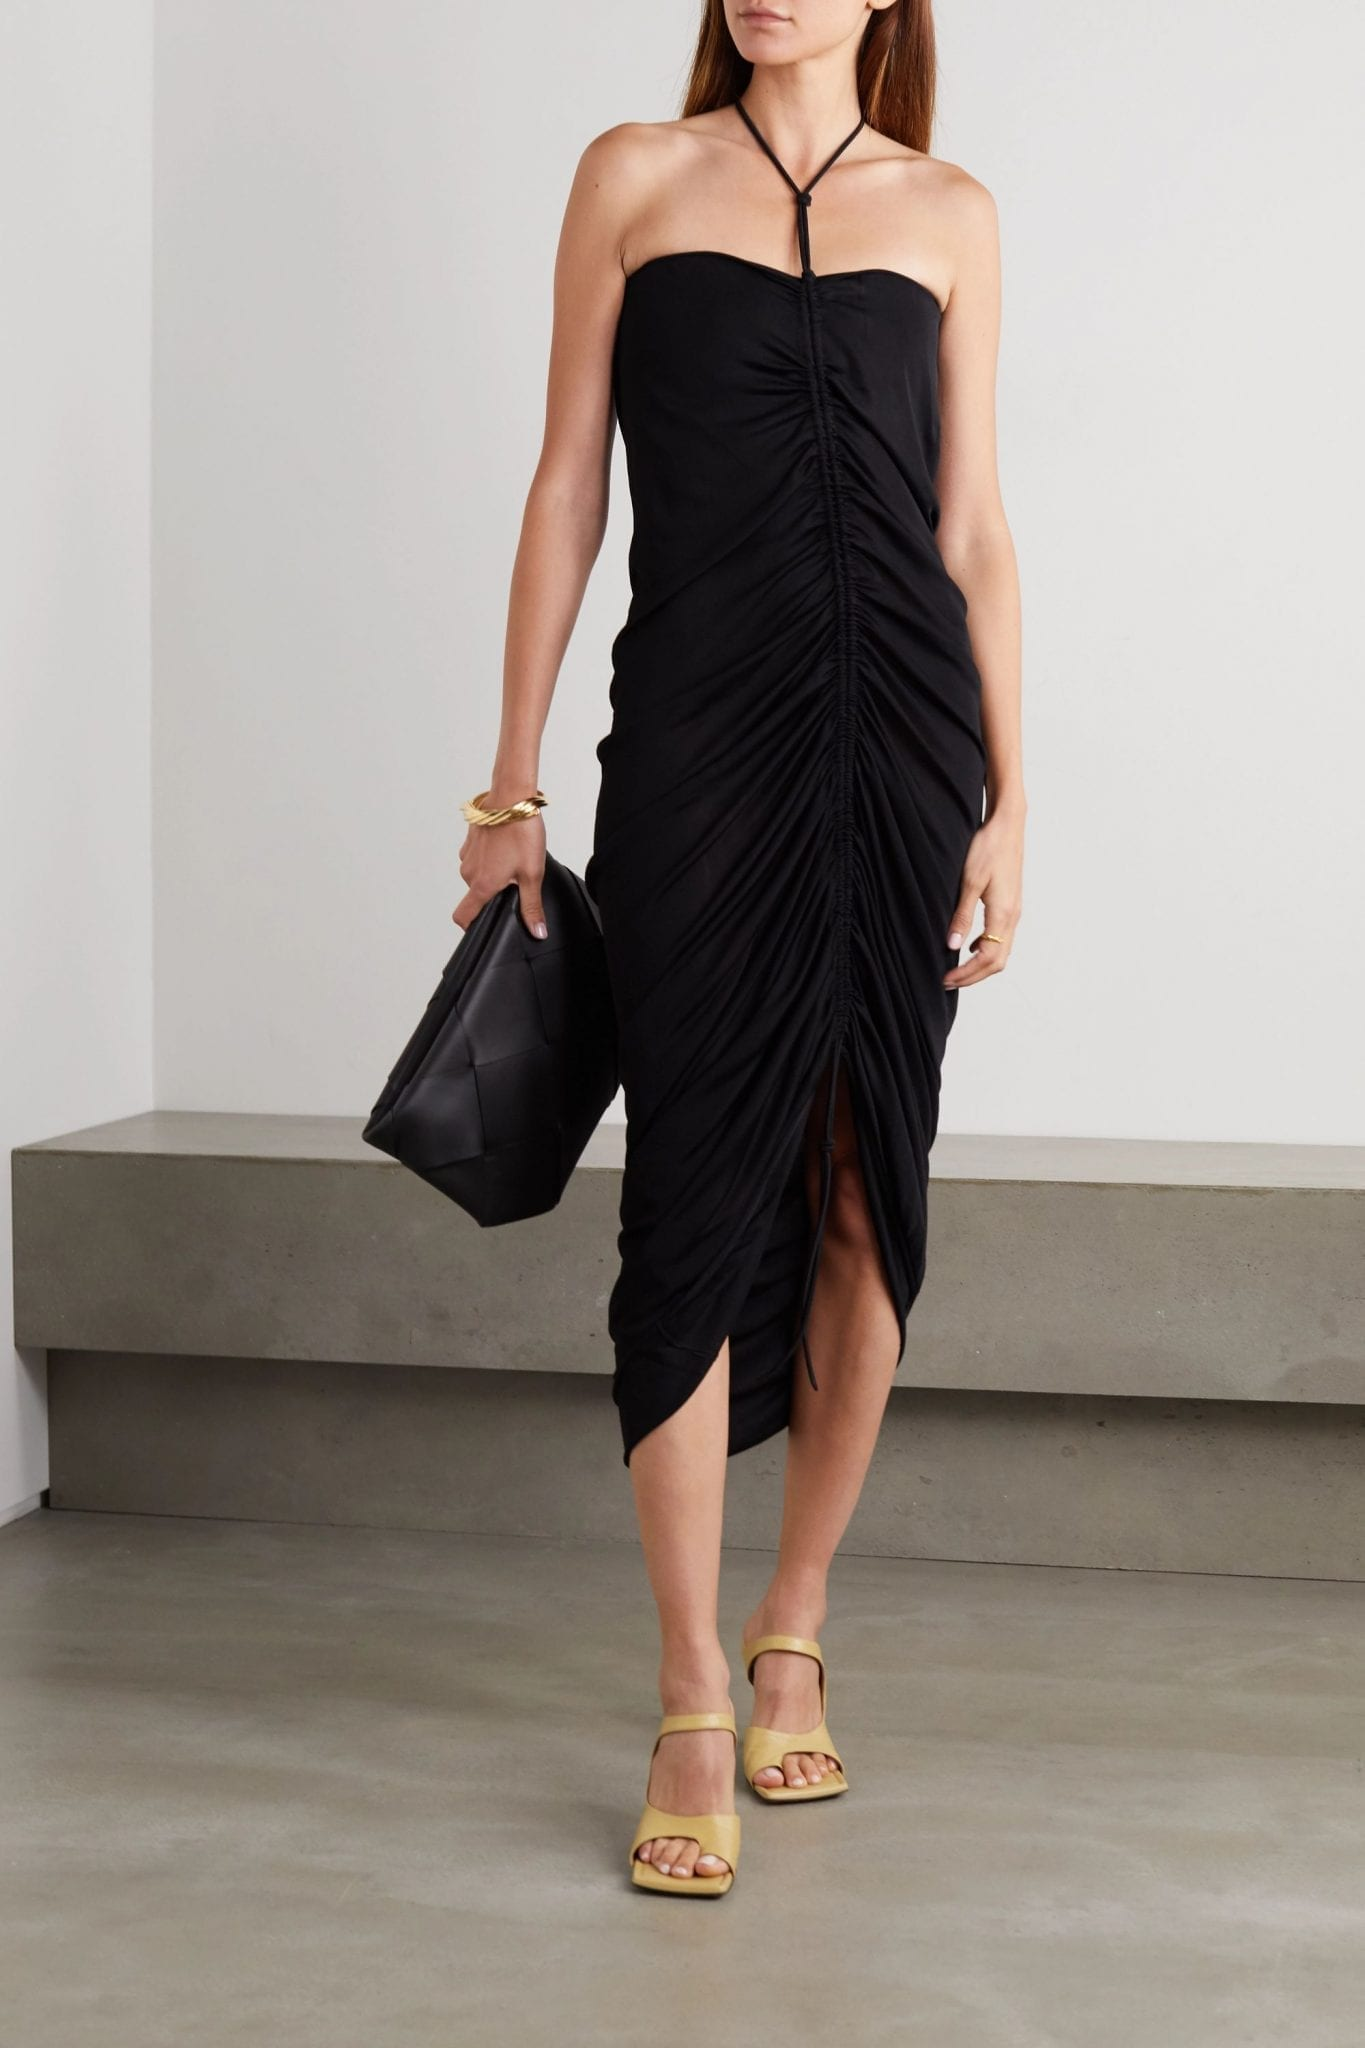 BOTTEGA VENETA Ruched Stretch-knit Halterneck Dress